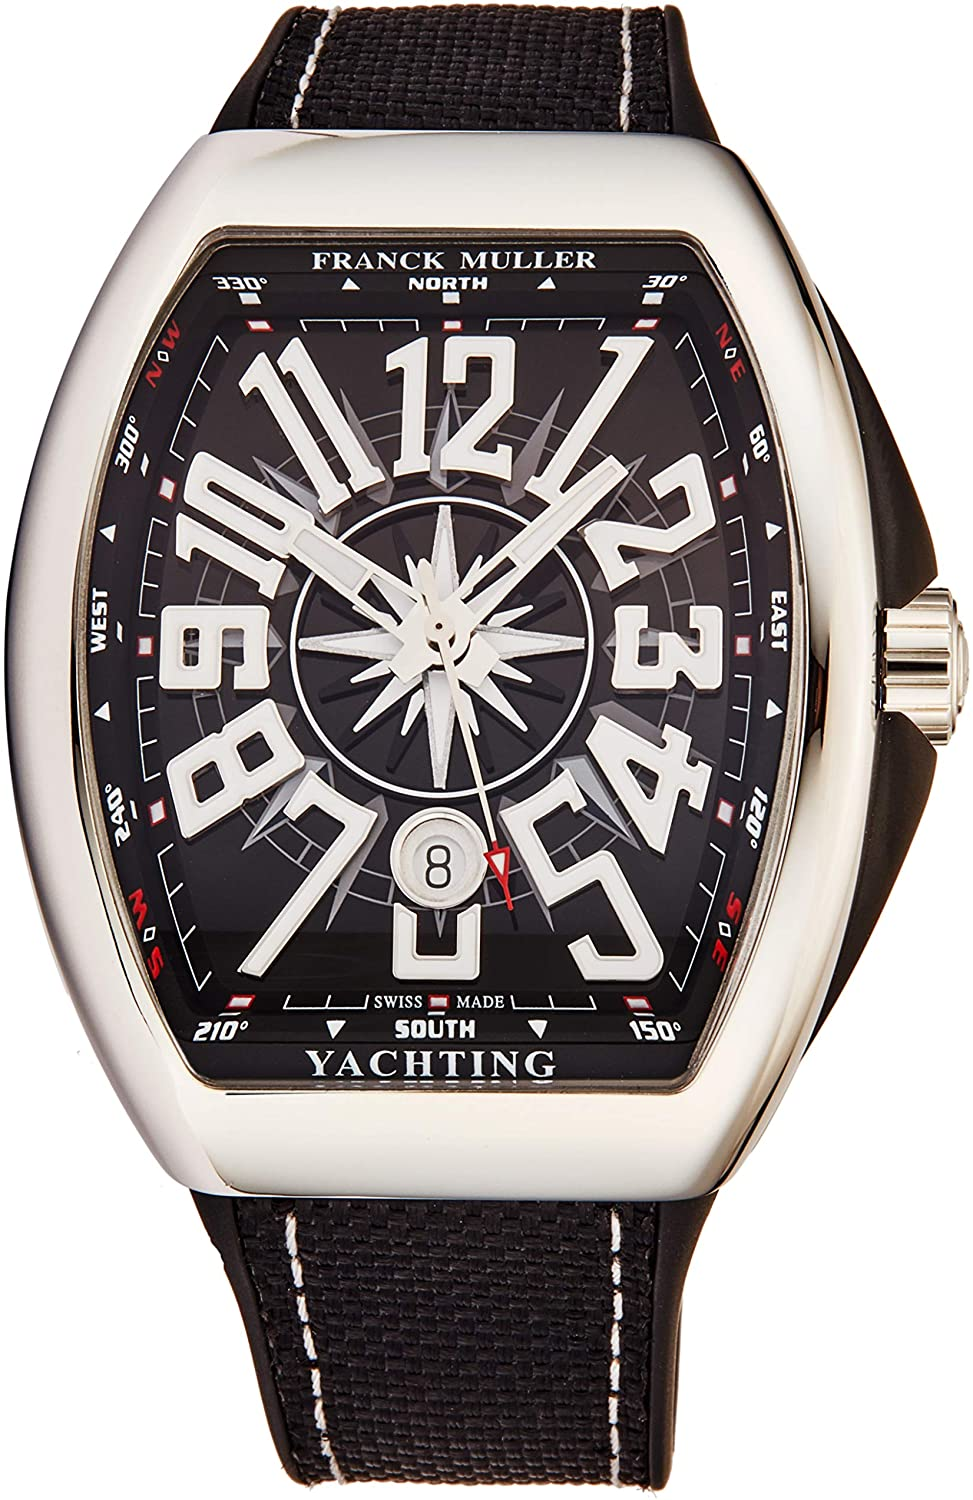 Franck Muller Vanguard Yachting Mens Stainless Steel Automatic Watch - Tonneau Black Face with Luminous Hands, Date and Sapphire Crystal - Black Fabric/Rubber Strap Swiss Made Watch V 45 SC Yacht BLK